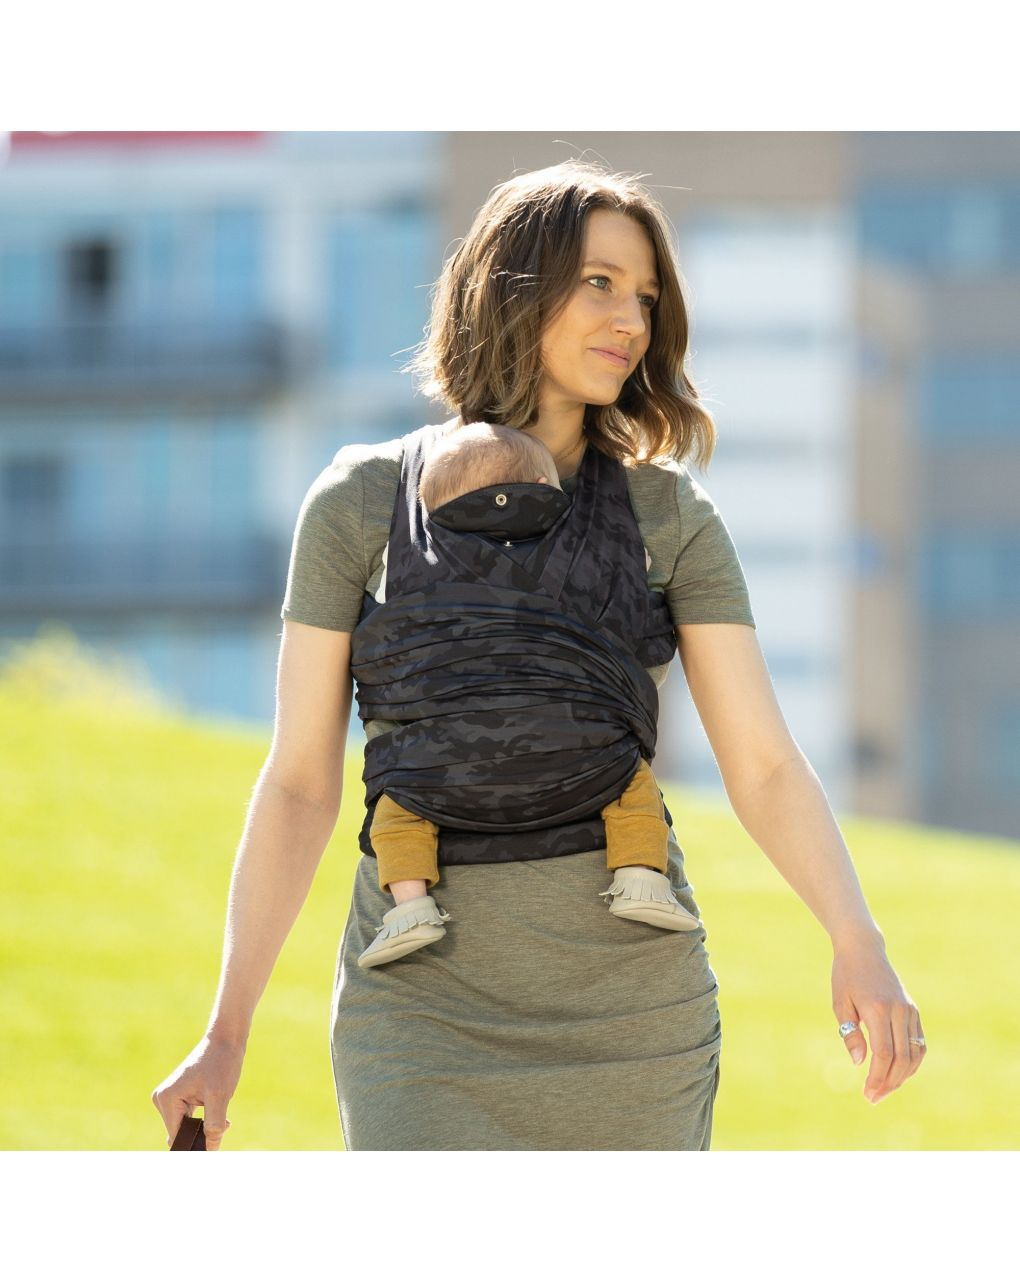 Comfyfit baby carrier camouflage - Boppy